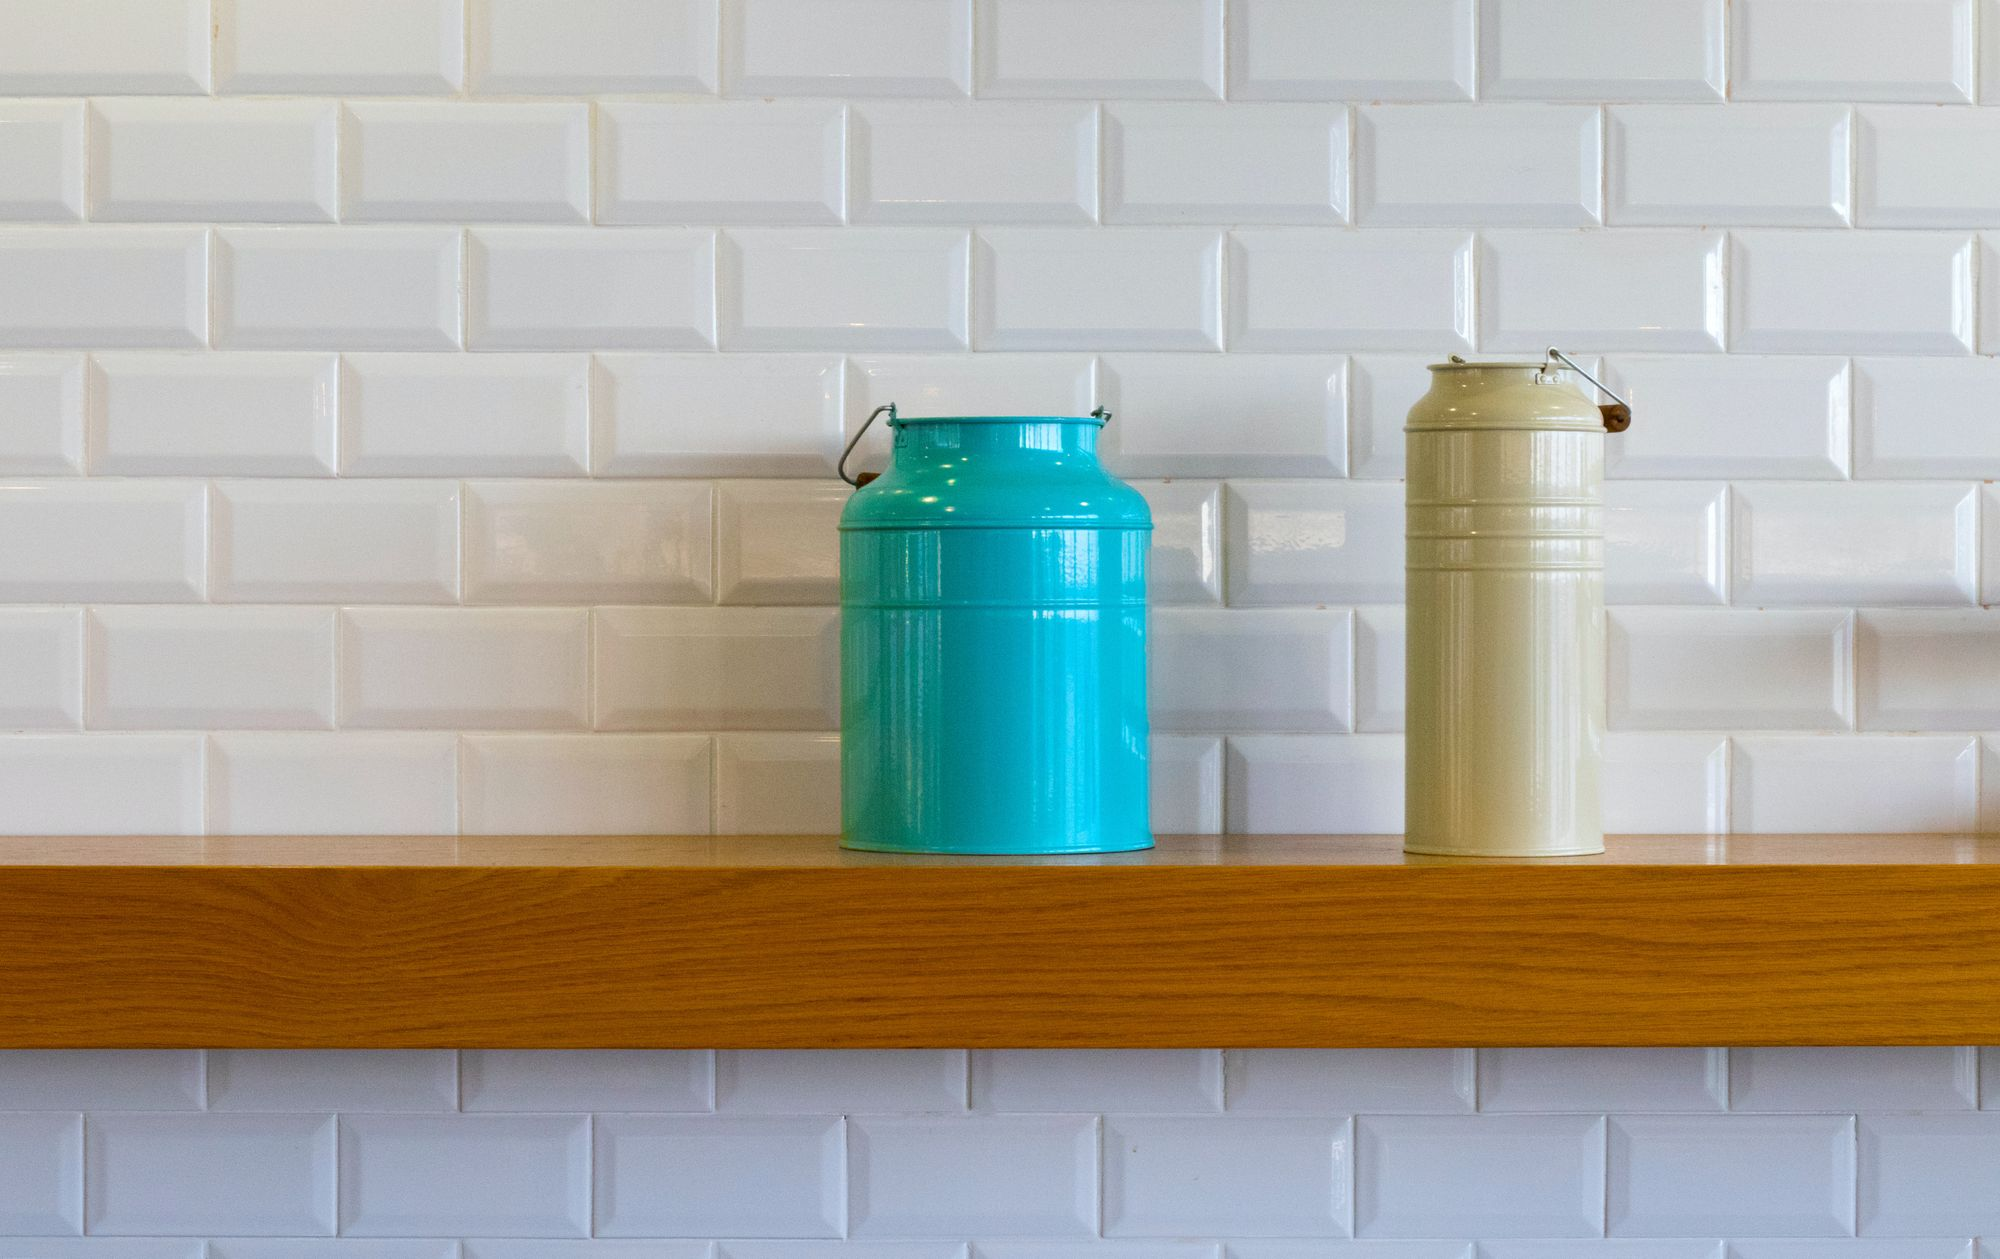 Refill shops can be a great way to get more environmental friendly at home